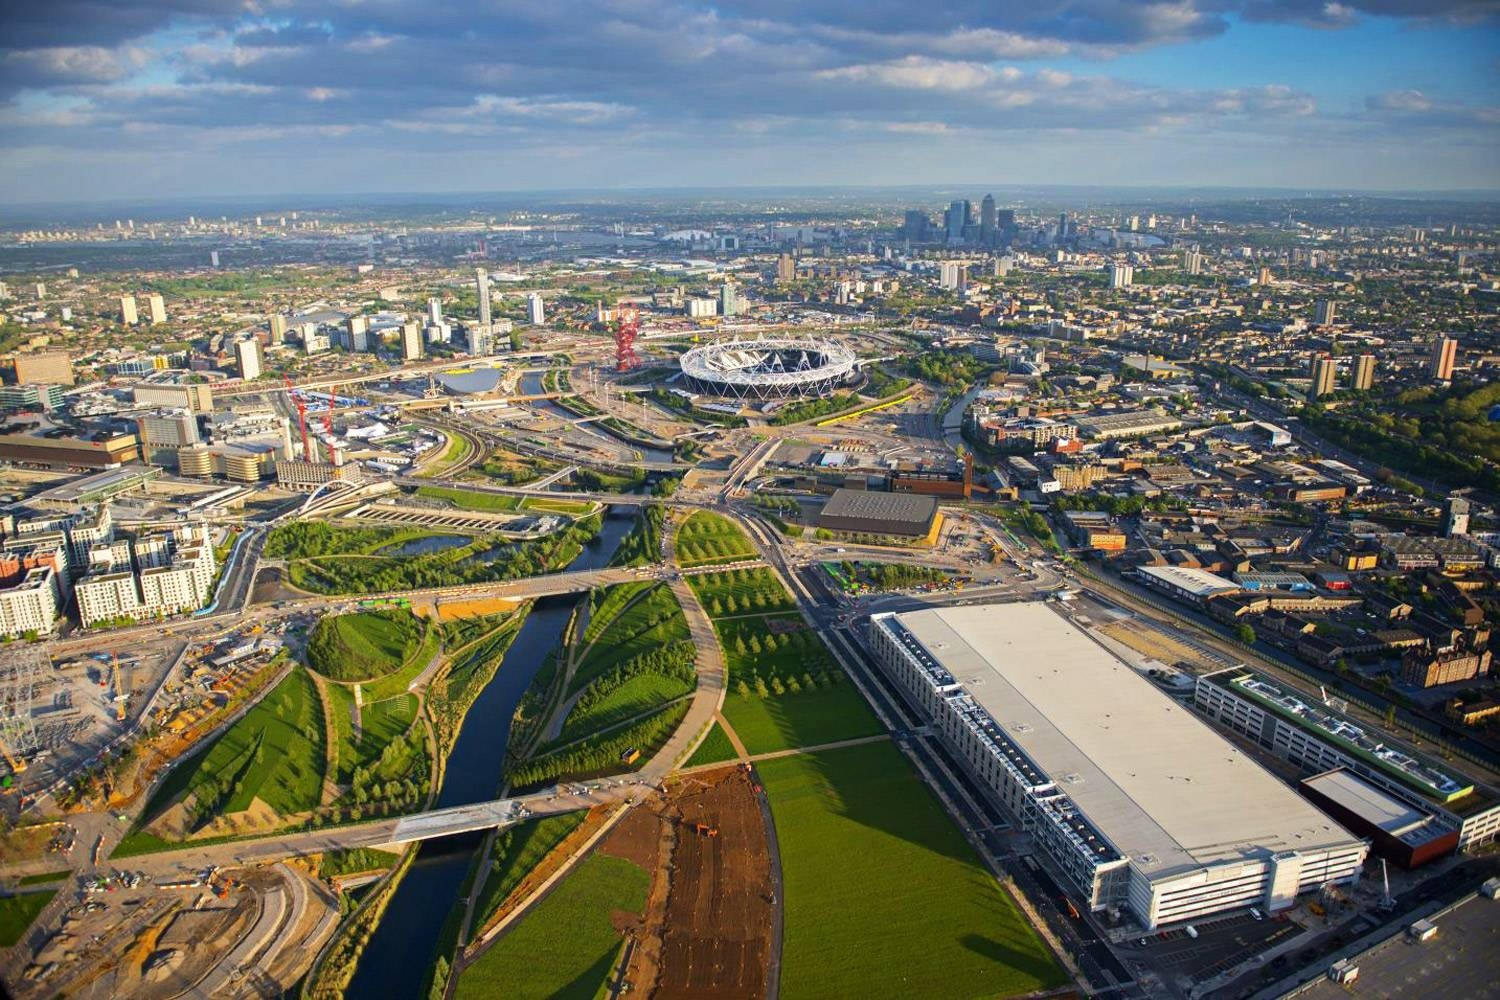 Queen Elizabeth Olympic Park, London, UK